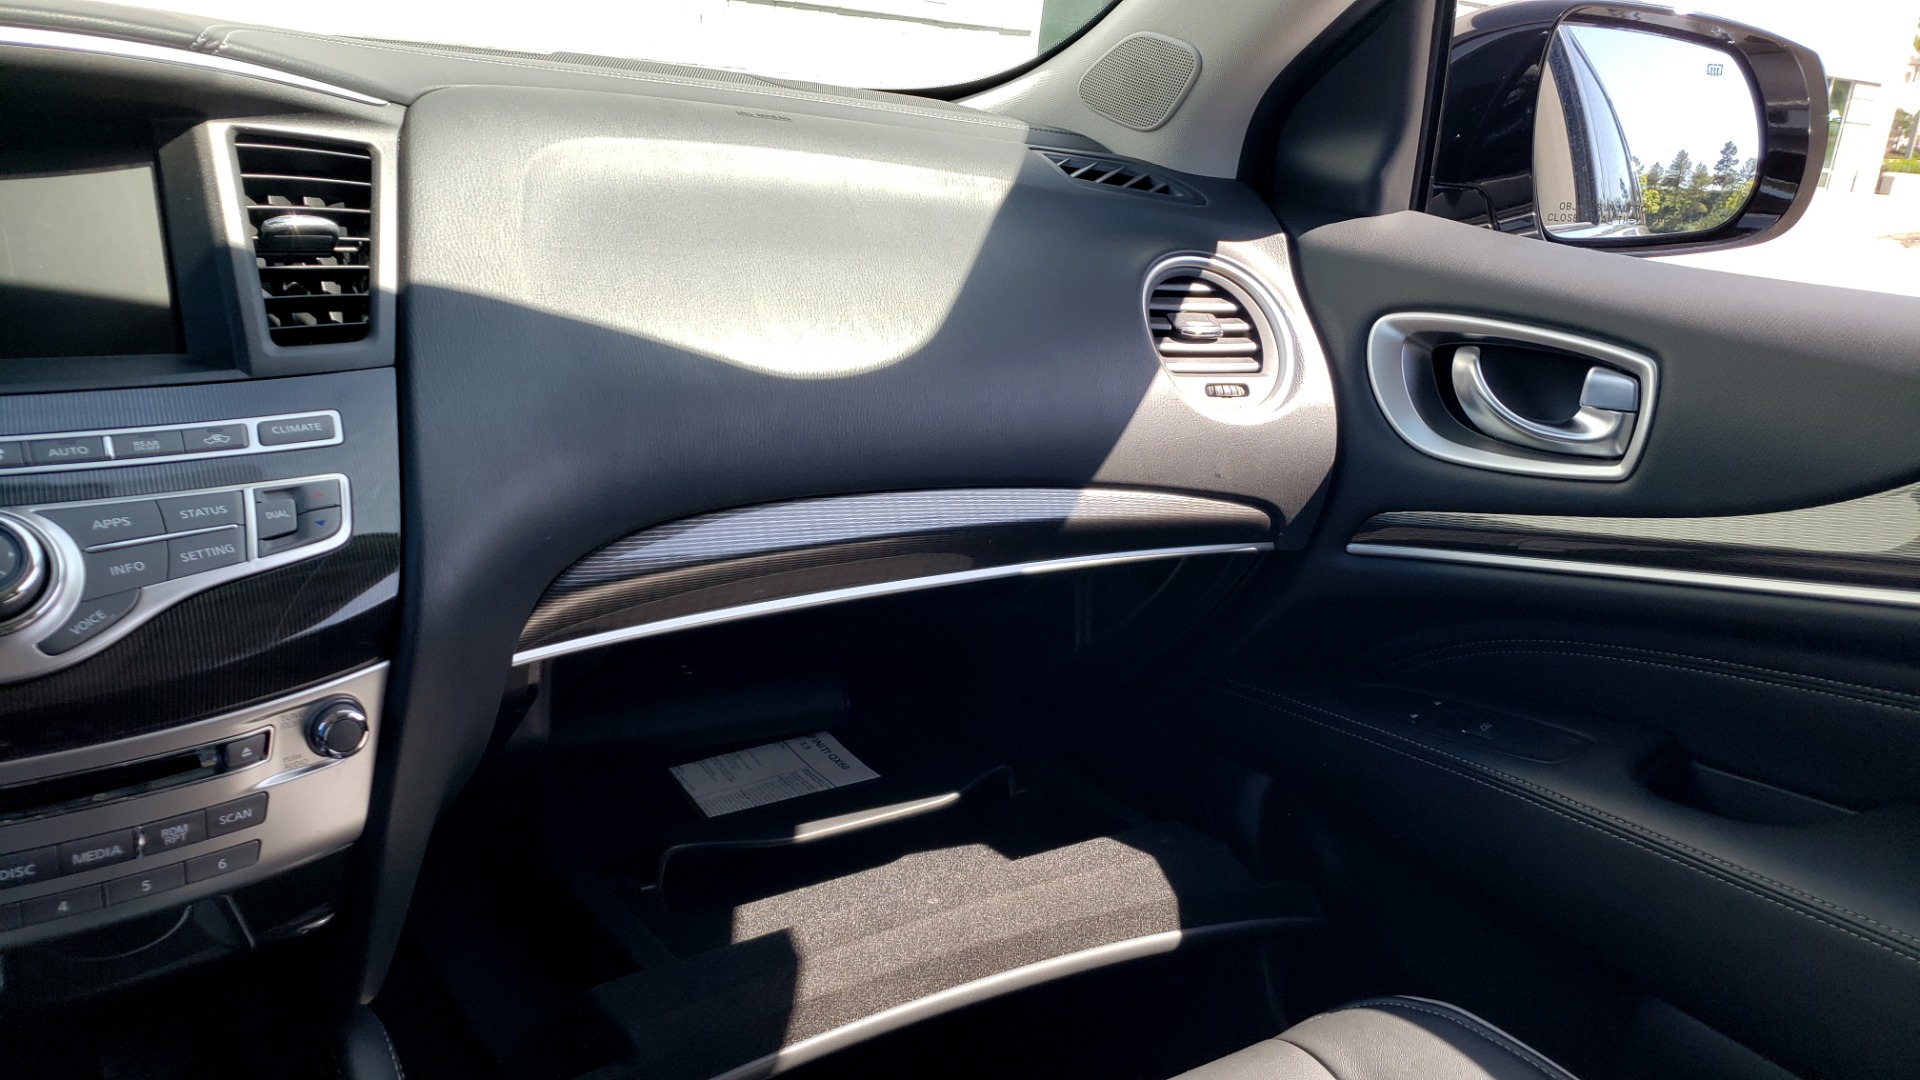 Used 2018 INFINITI QX60 3.5L V6 / FWD / CVT TRANS / NAV / SUNROOF / 3-ROWS / REARVIEW for sale $31,999 at Formula Imports in Charlotte NC 28227 57